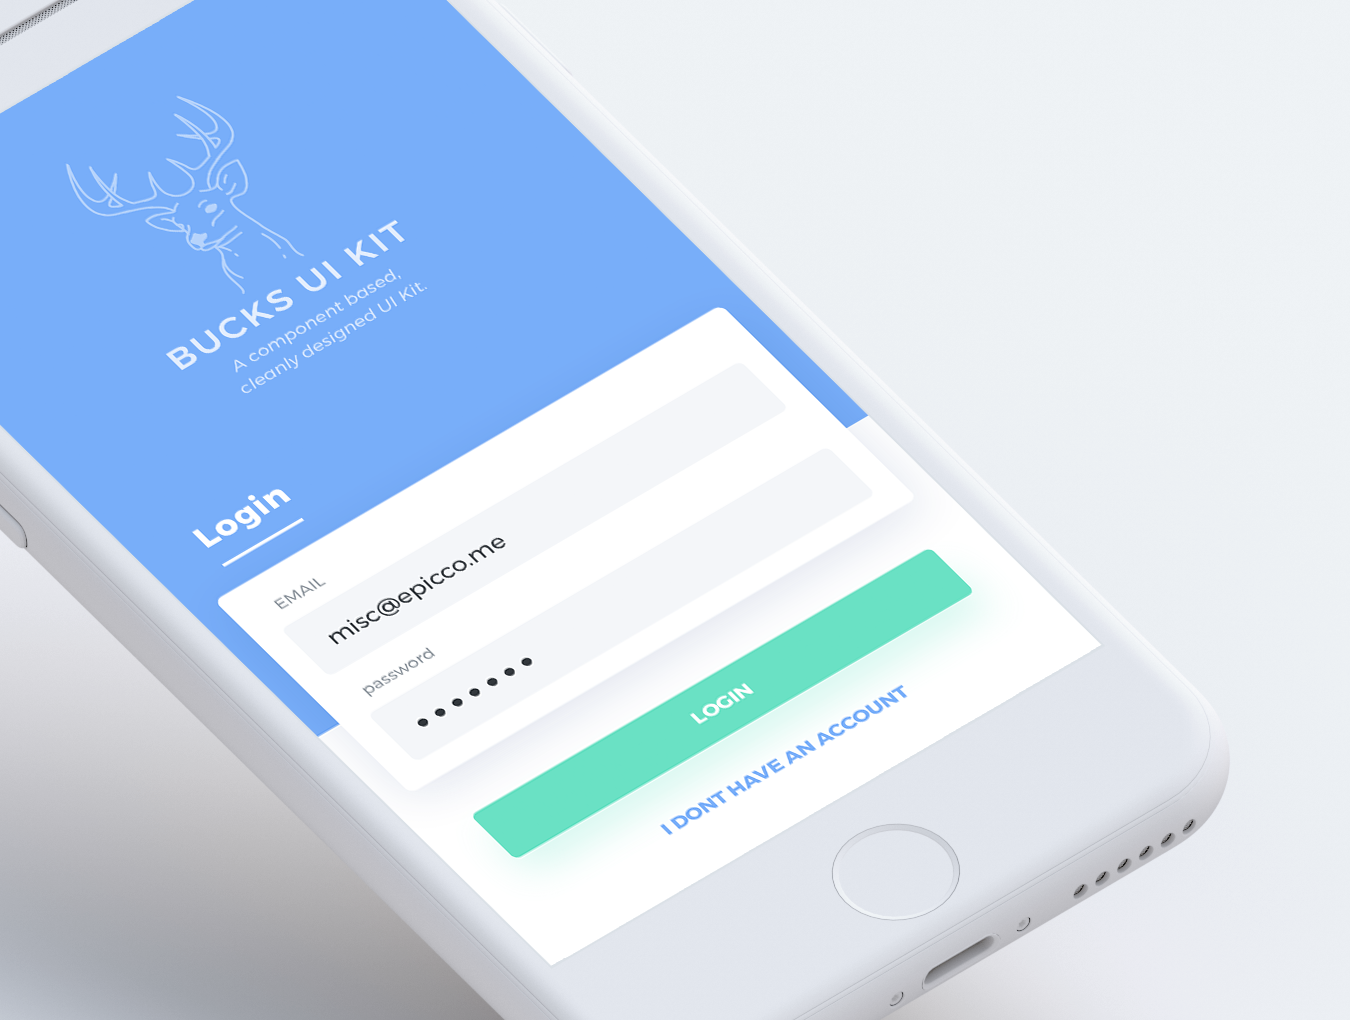 Bucks UI Kit